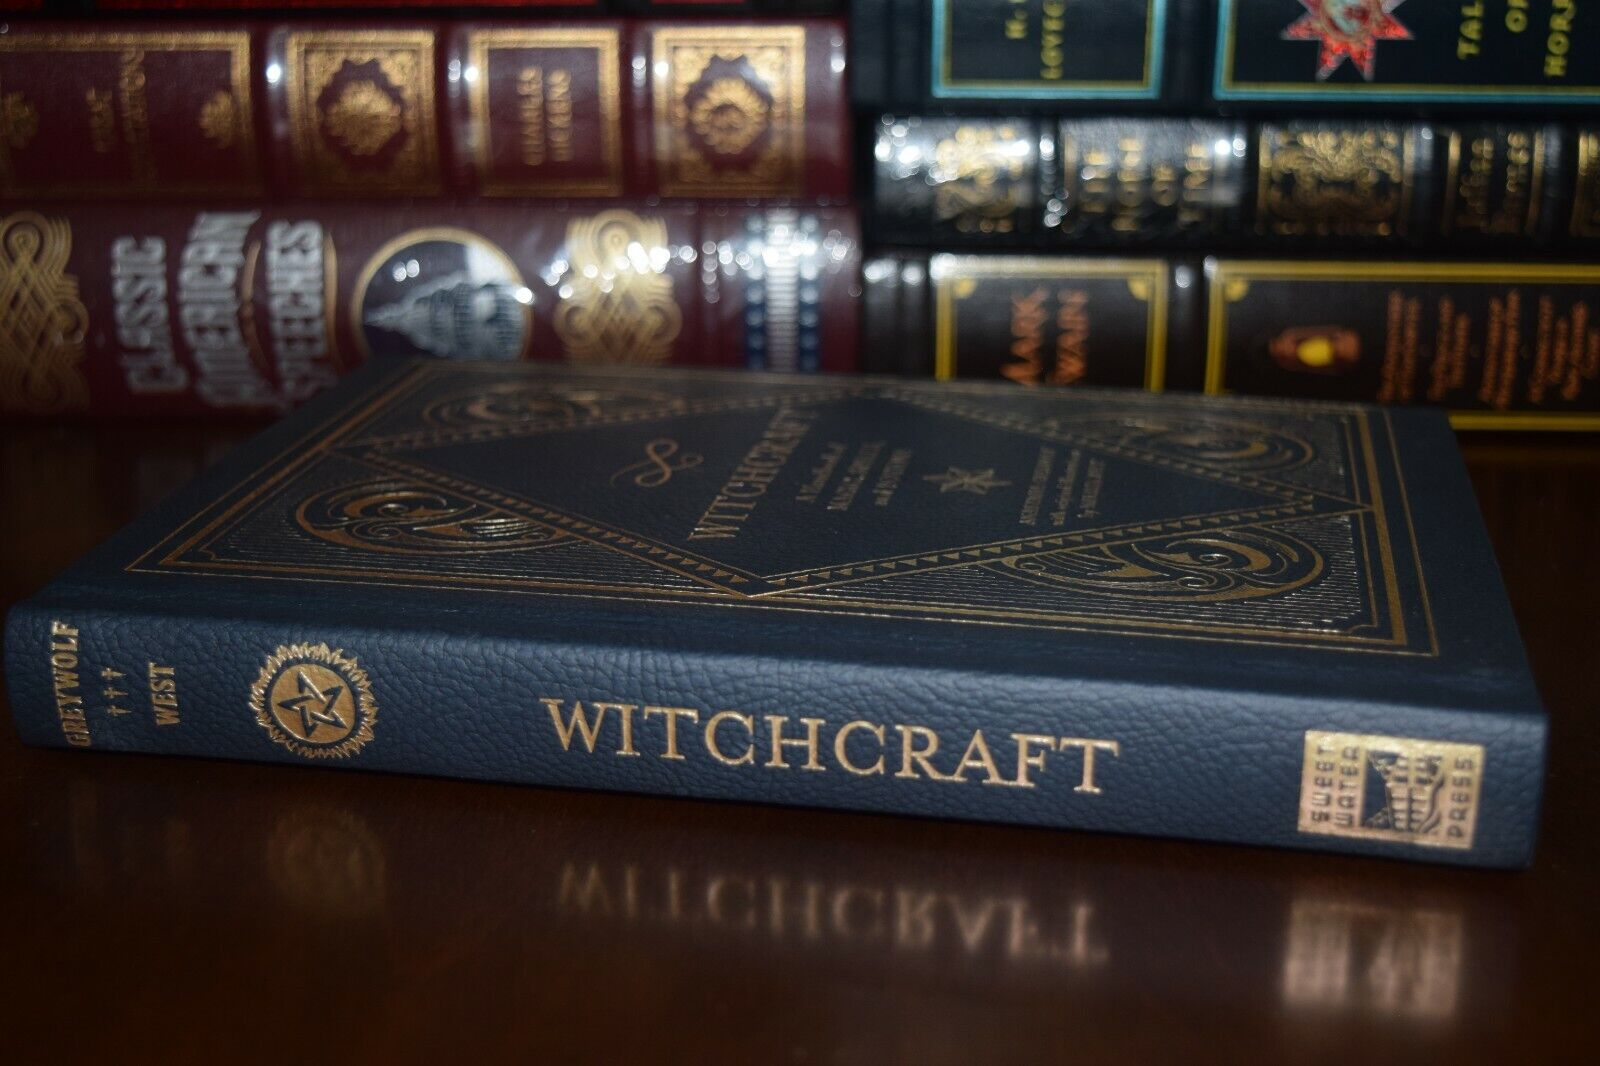 NEW Witchcraft Handbook of Magic Spells and Potions Ribbon Deluxe Hardcover Gift